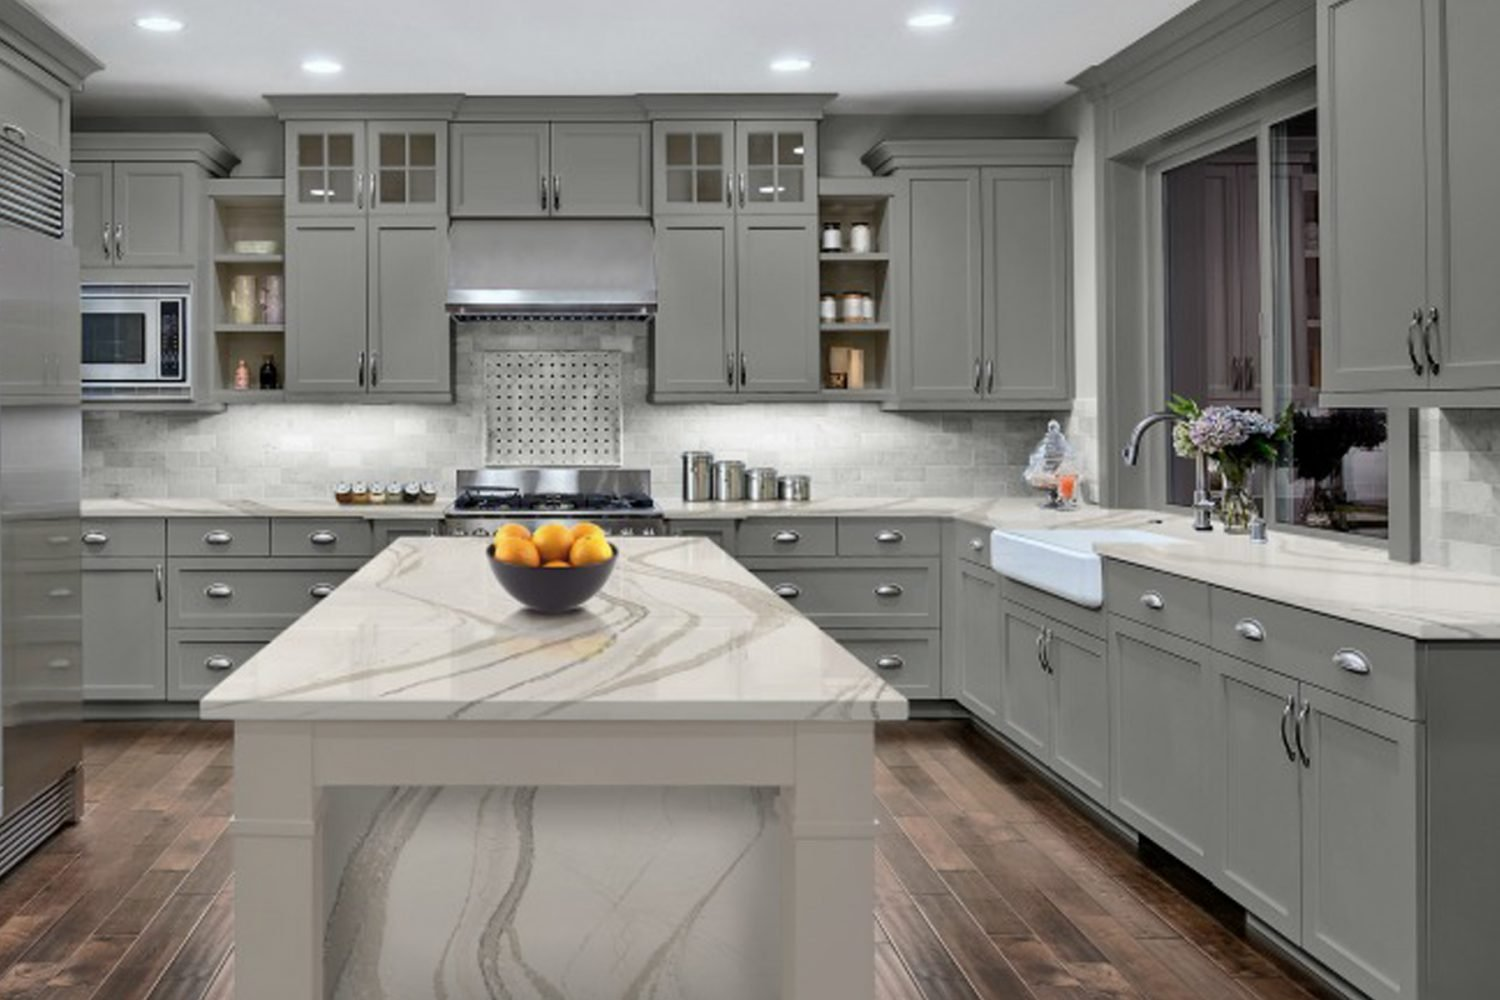 - The Role Of Backsplash - Is It Decorative Or Practical?